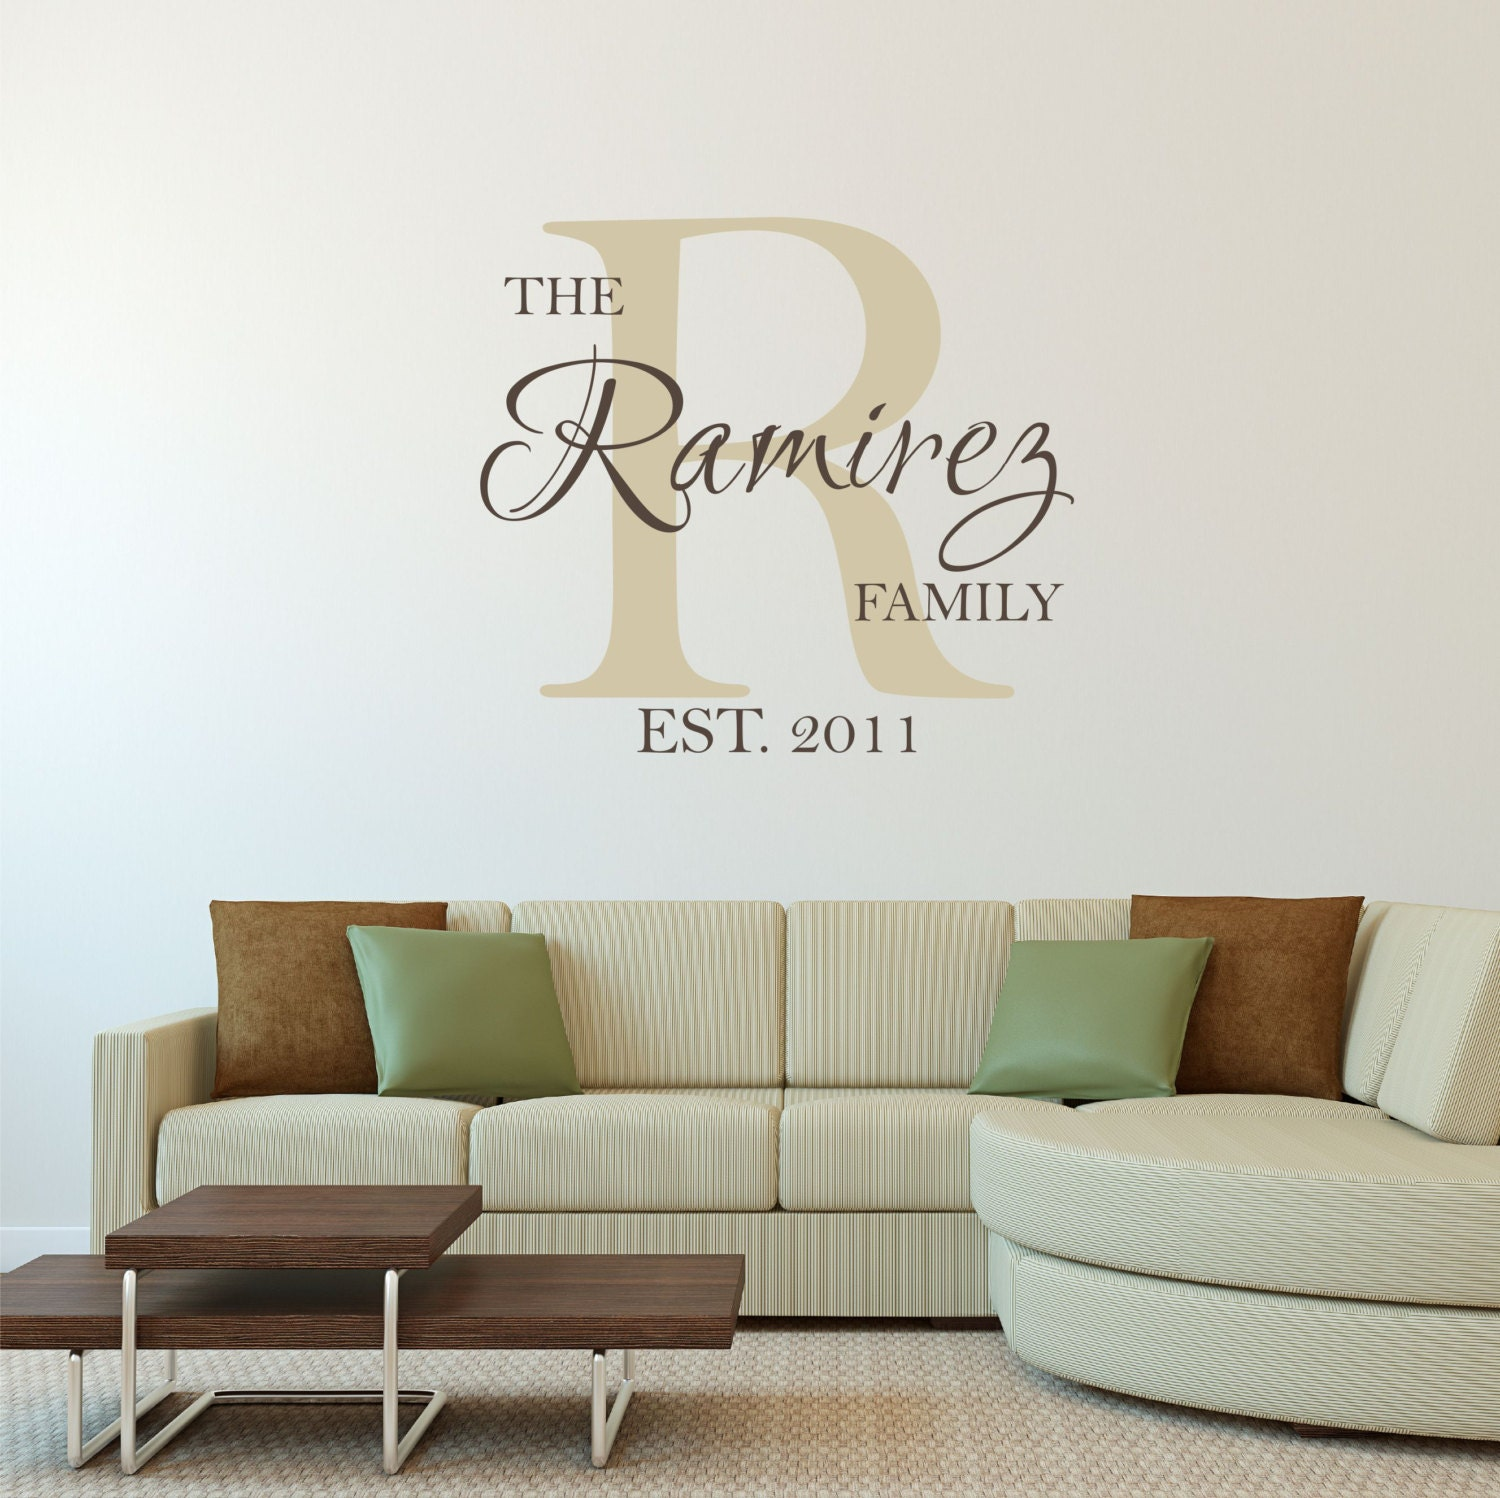 personalized family name wall decal sticker. Black Bedroom Furniture Sets. Home Design Ideas